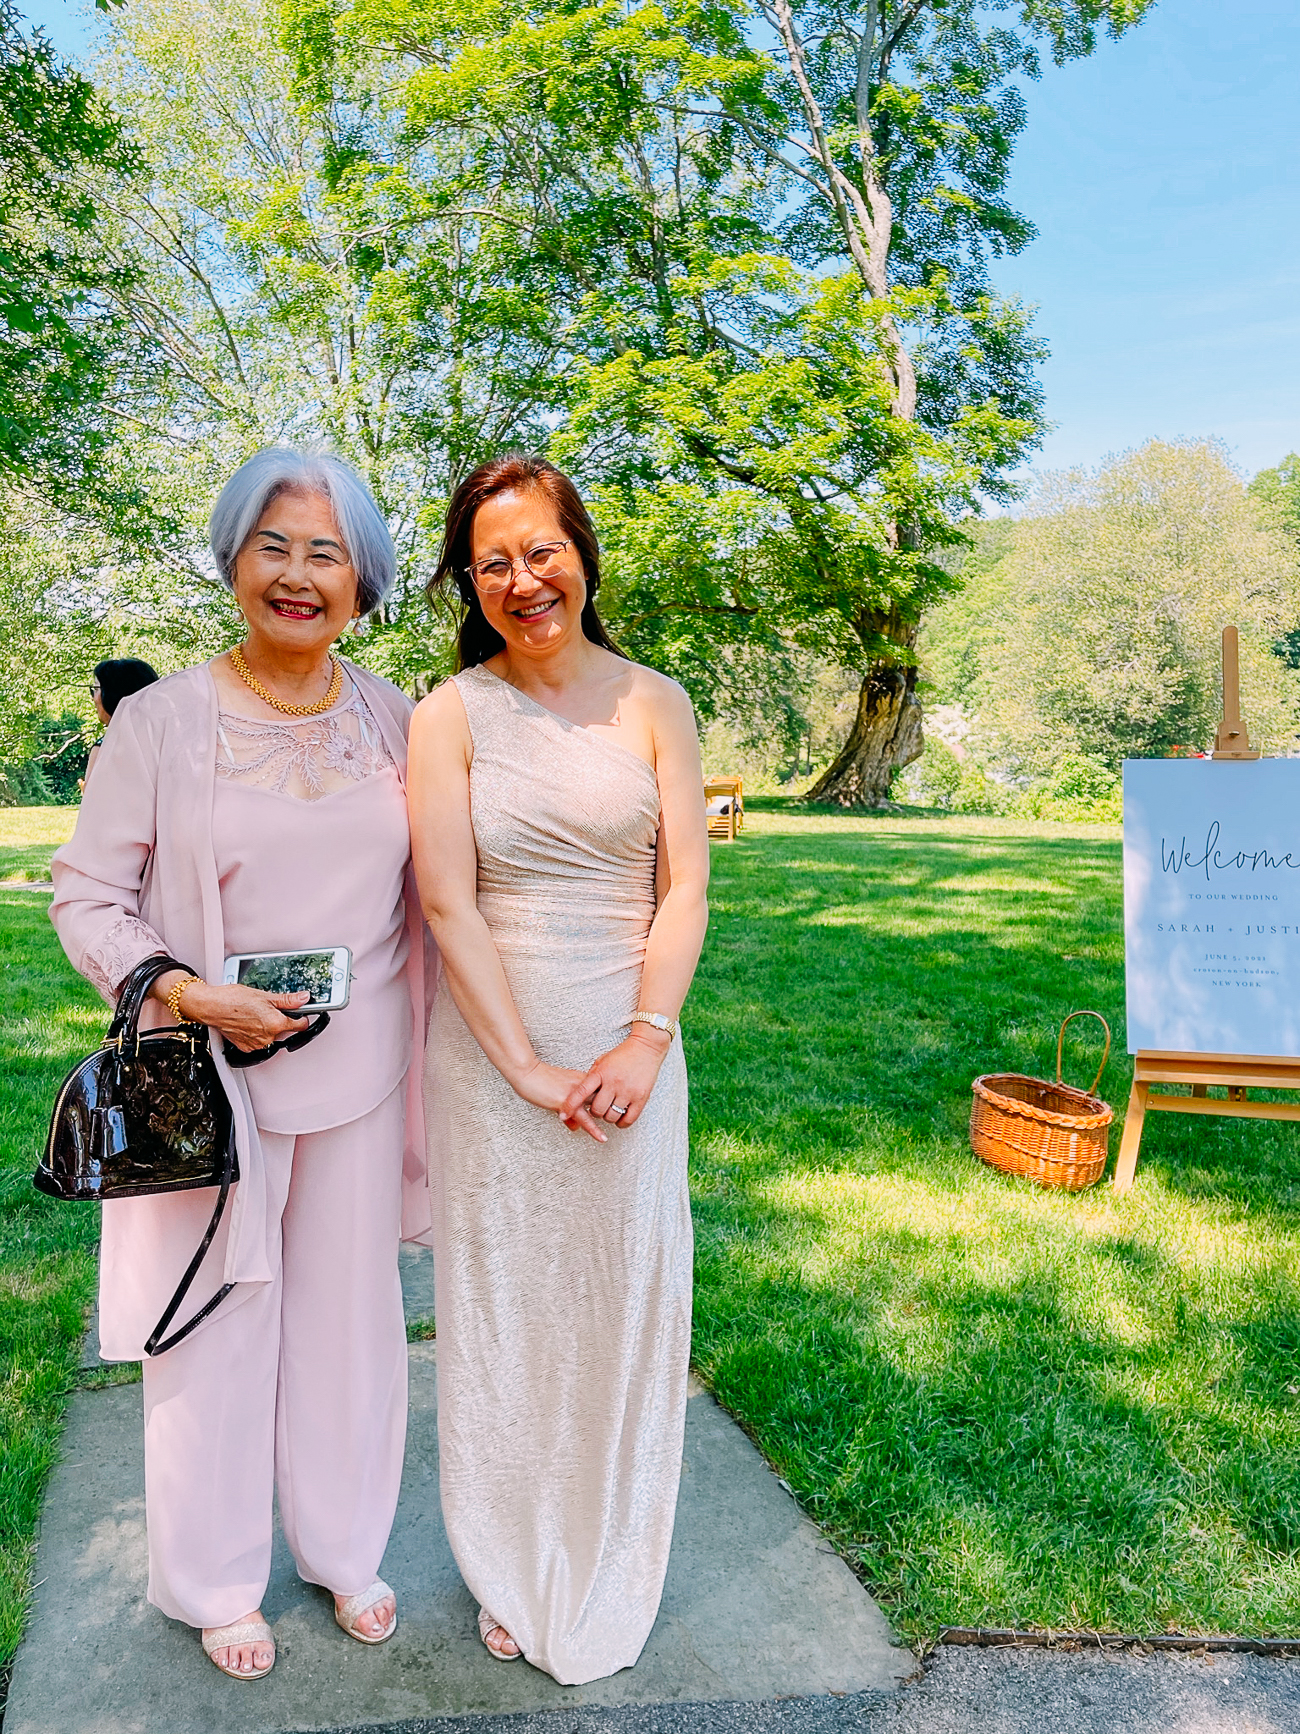 Judy and her mom